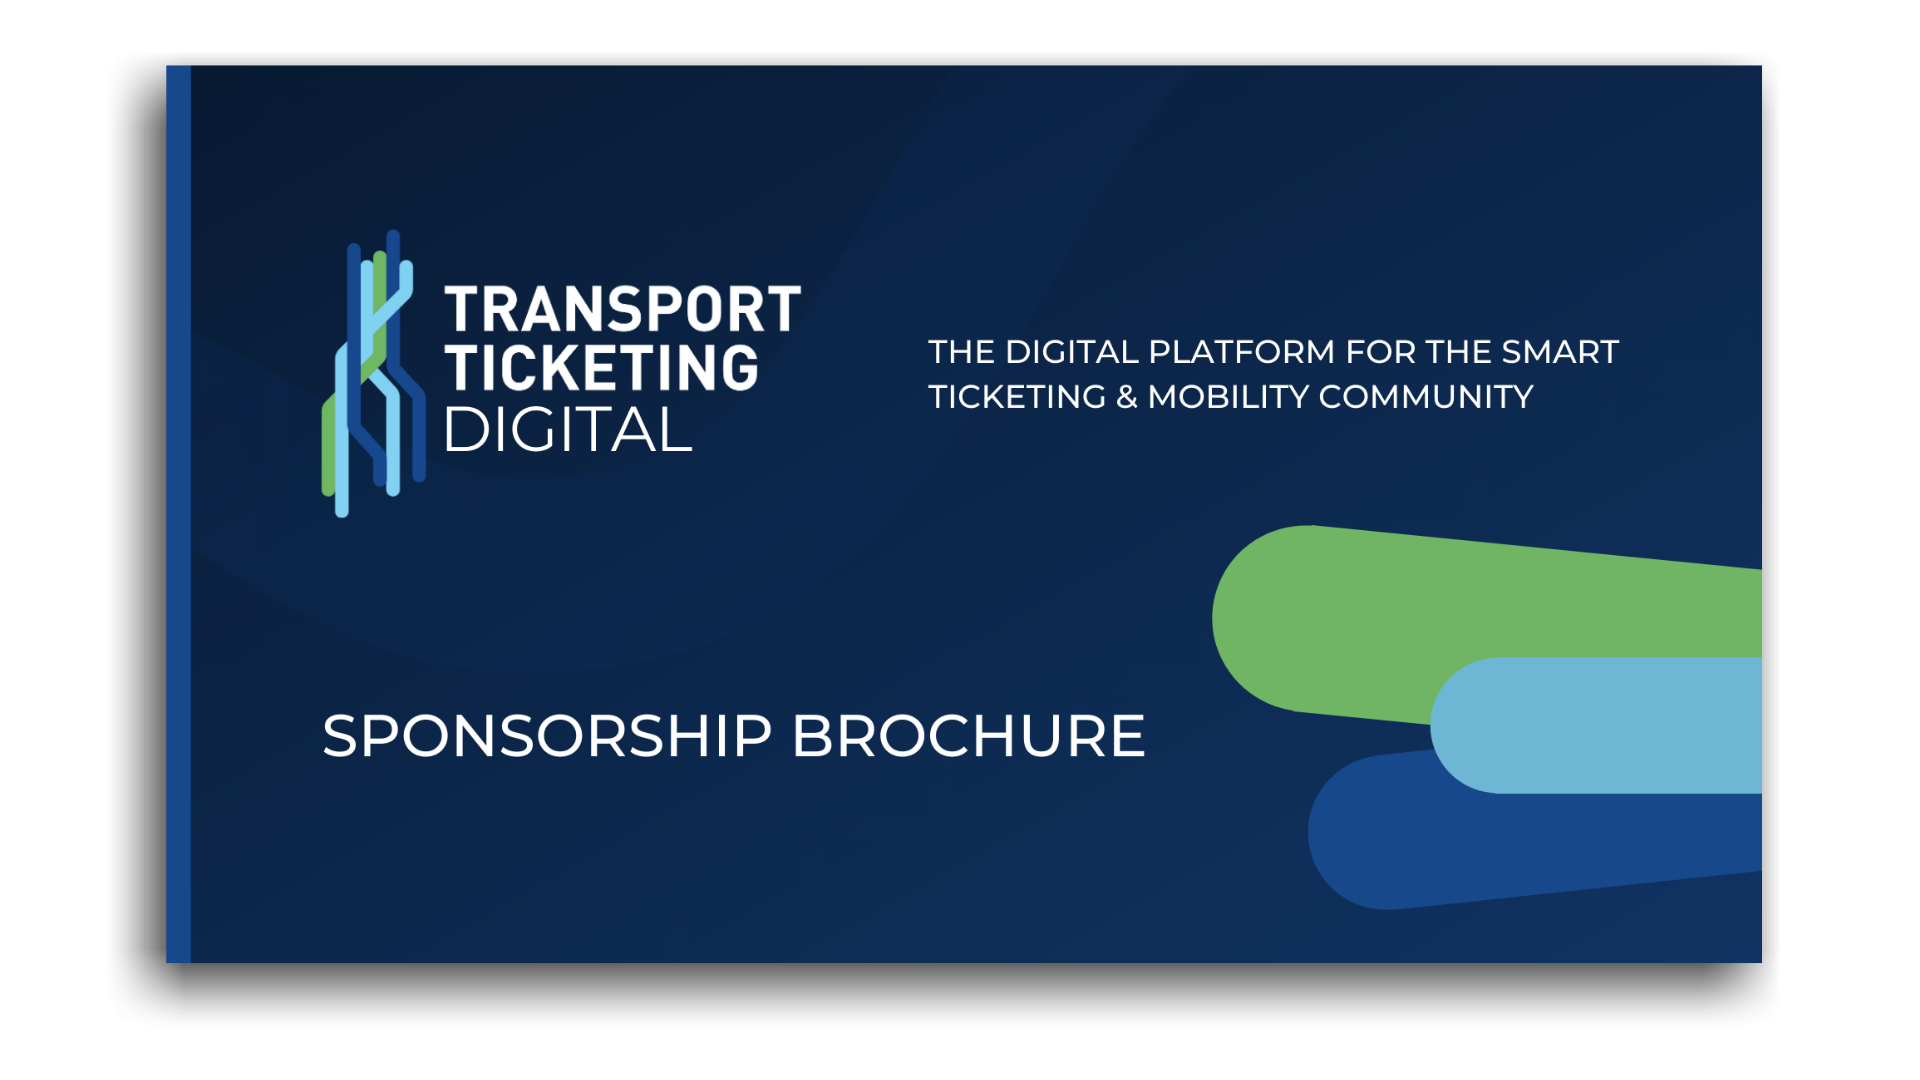 Transport Ticketing Digital Sponsorship Brochure